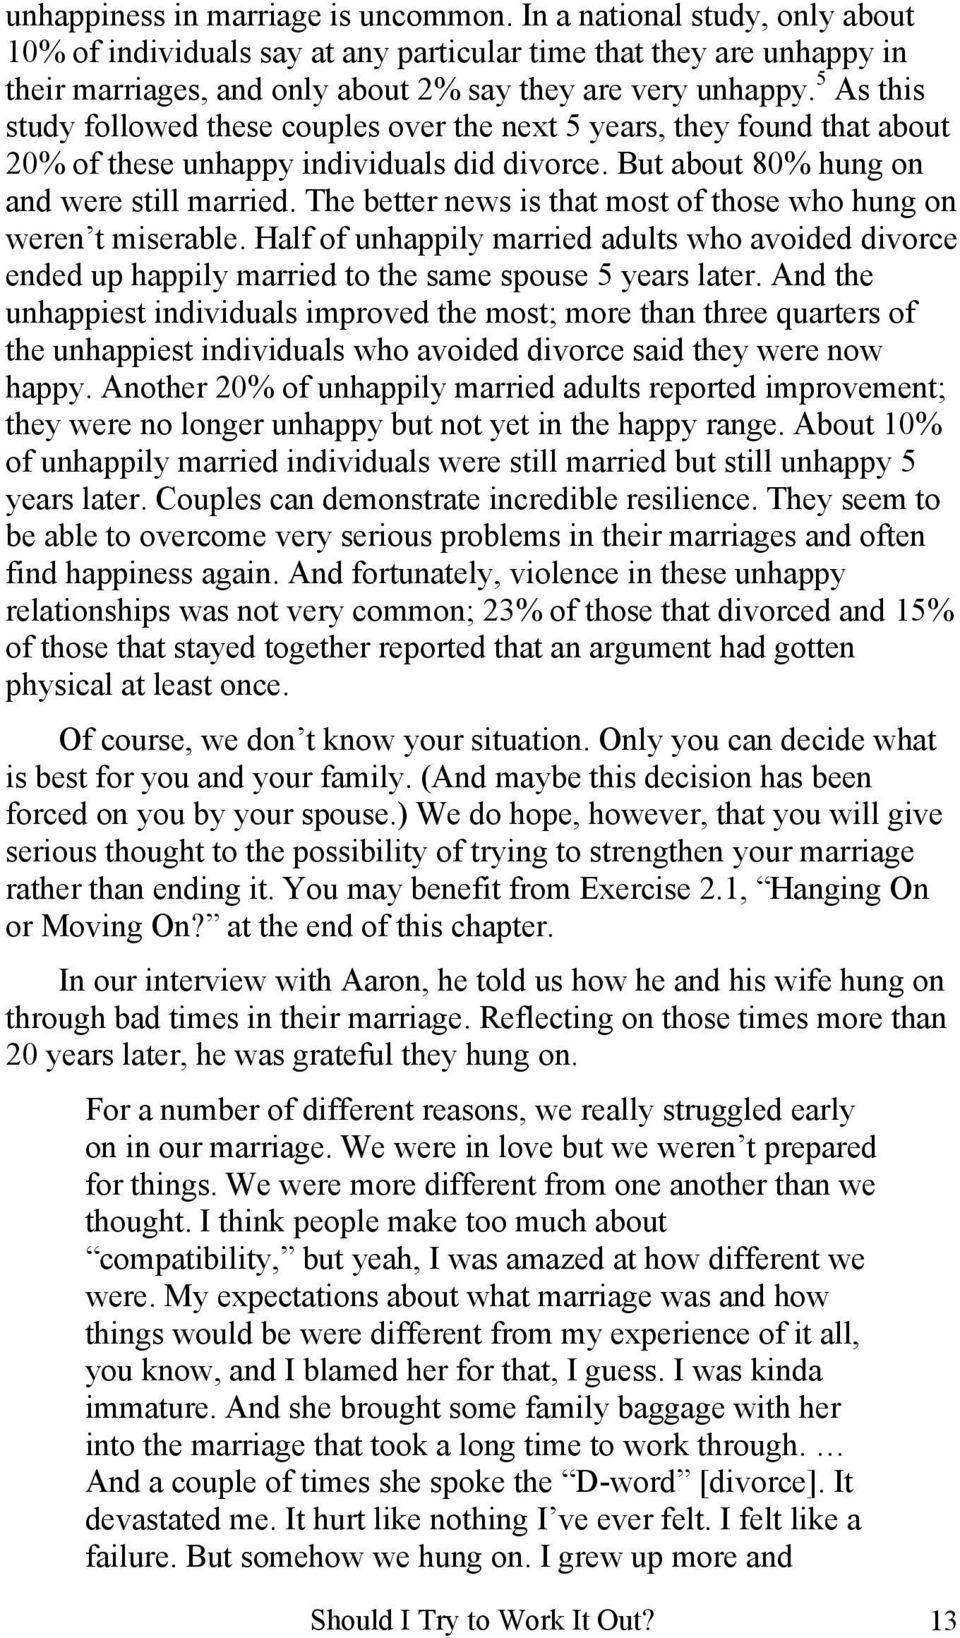 5 As this study followed these couples over the next 5 years, they found that about 20% of these unhappy individuals did divorce. But about 80% hung on and were still married.